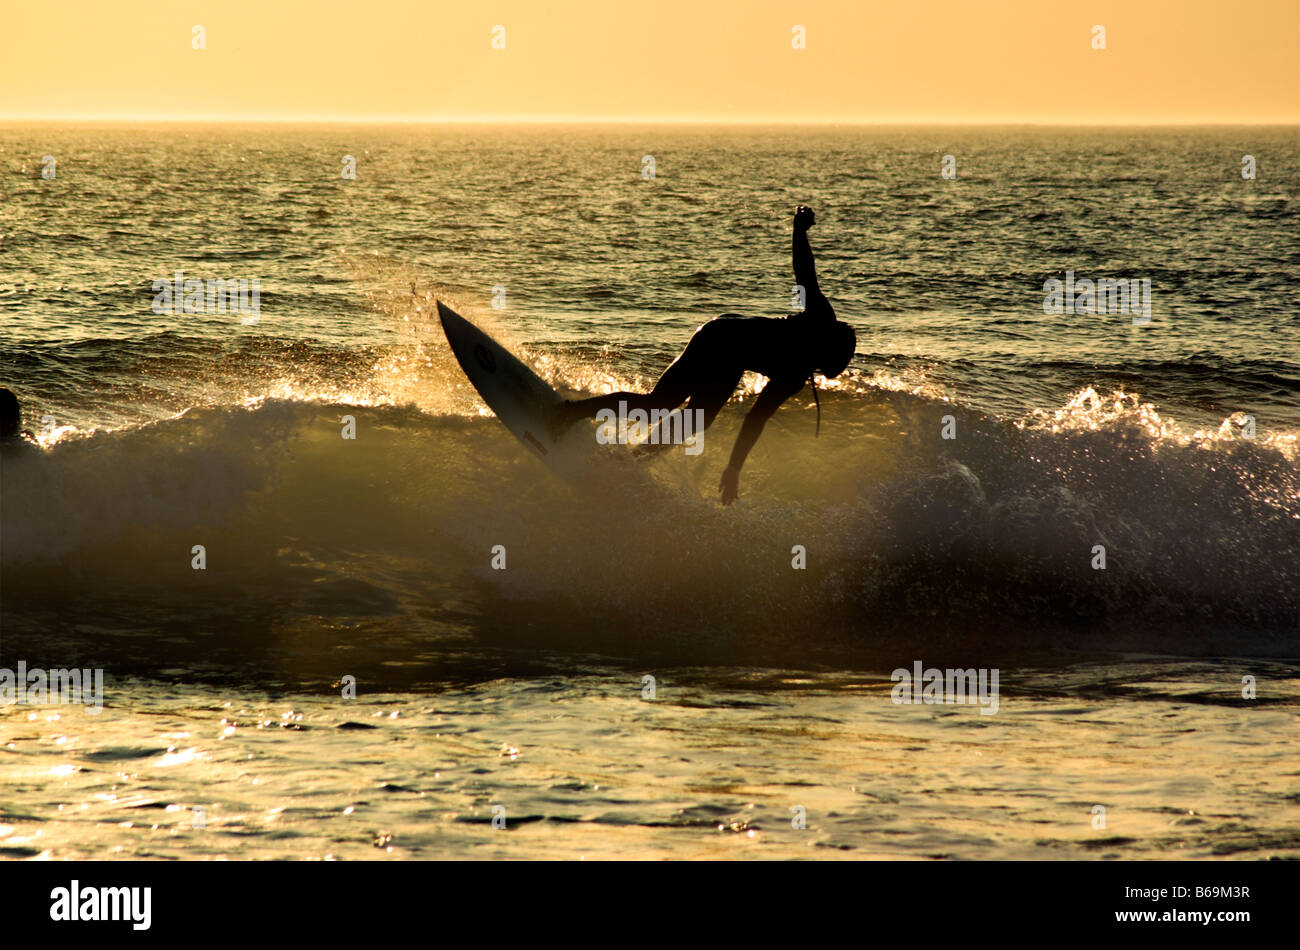 a-surfer-in-action-on-a-wave-at-sunset-a